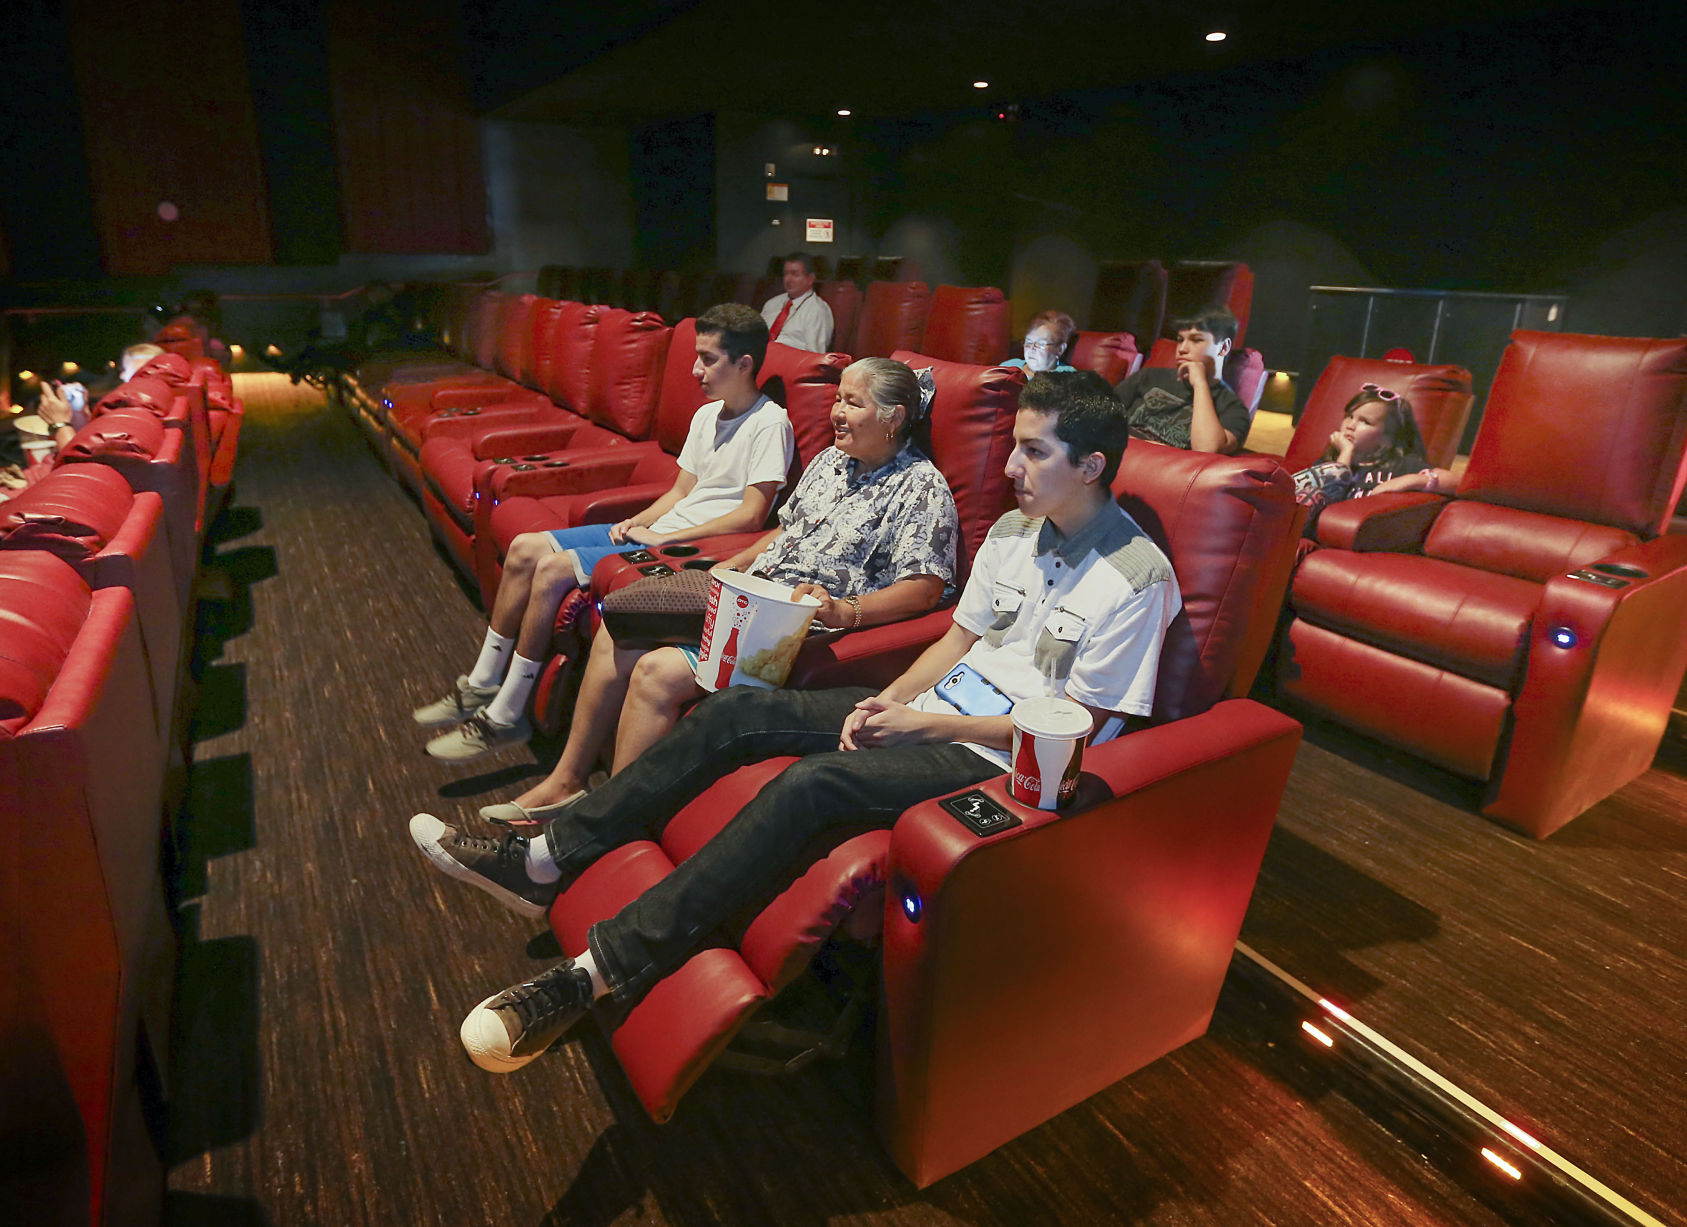 Reclining Chair Movie Theater Amc 6 Reopens On California Avenue With Reclining Seats Upcoming